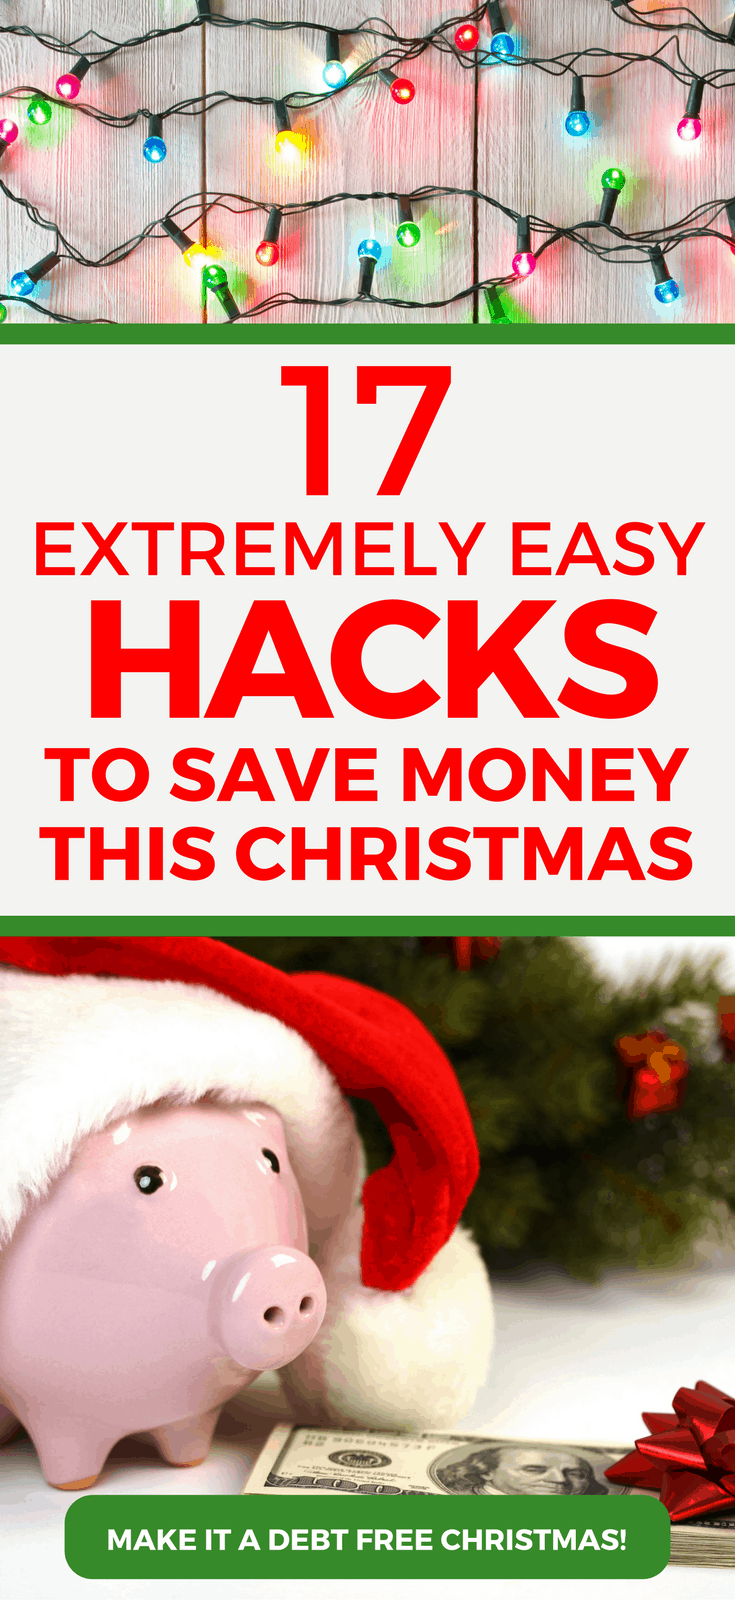 Make it a debt free Christmas this year! Here are 17 extremely easy hacks for saving money and spending wisely this year. Christmas Budgeting | Frugal Christmas | Saving Money | Holidays #Christmas #Saving #savingmoney